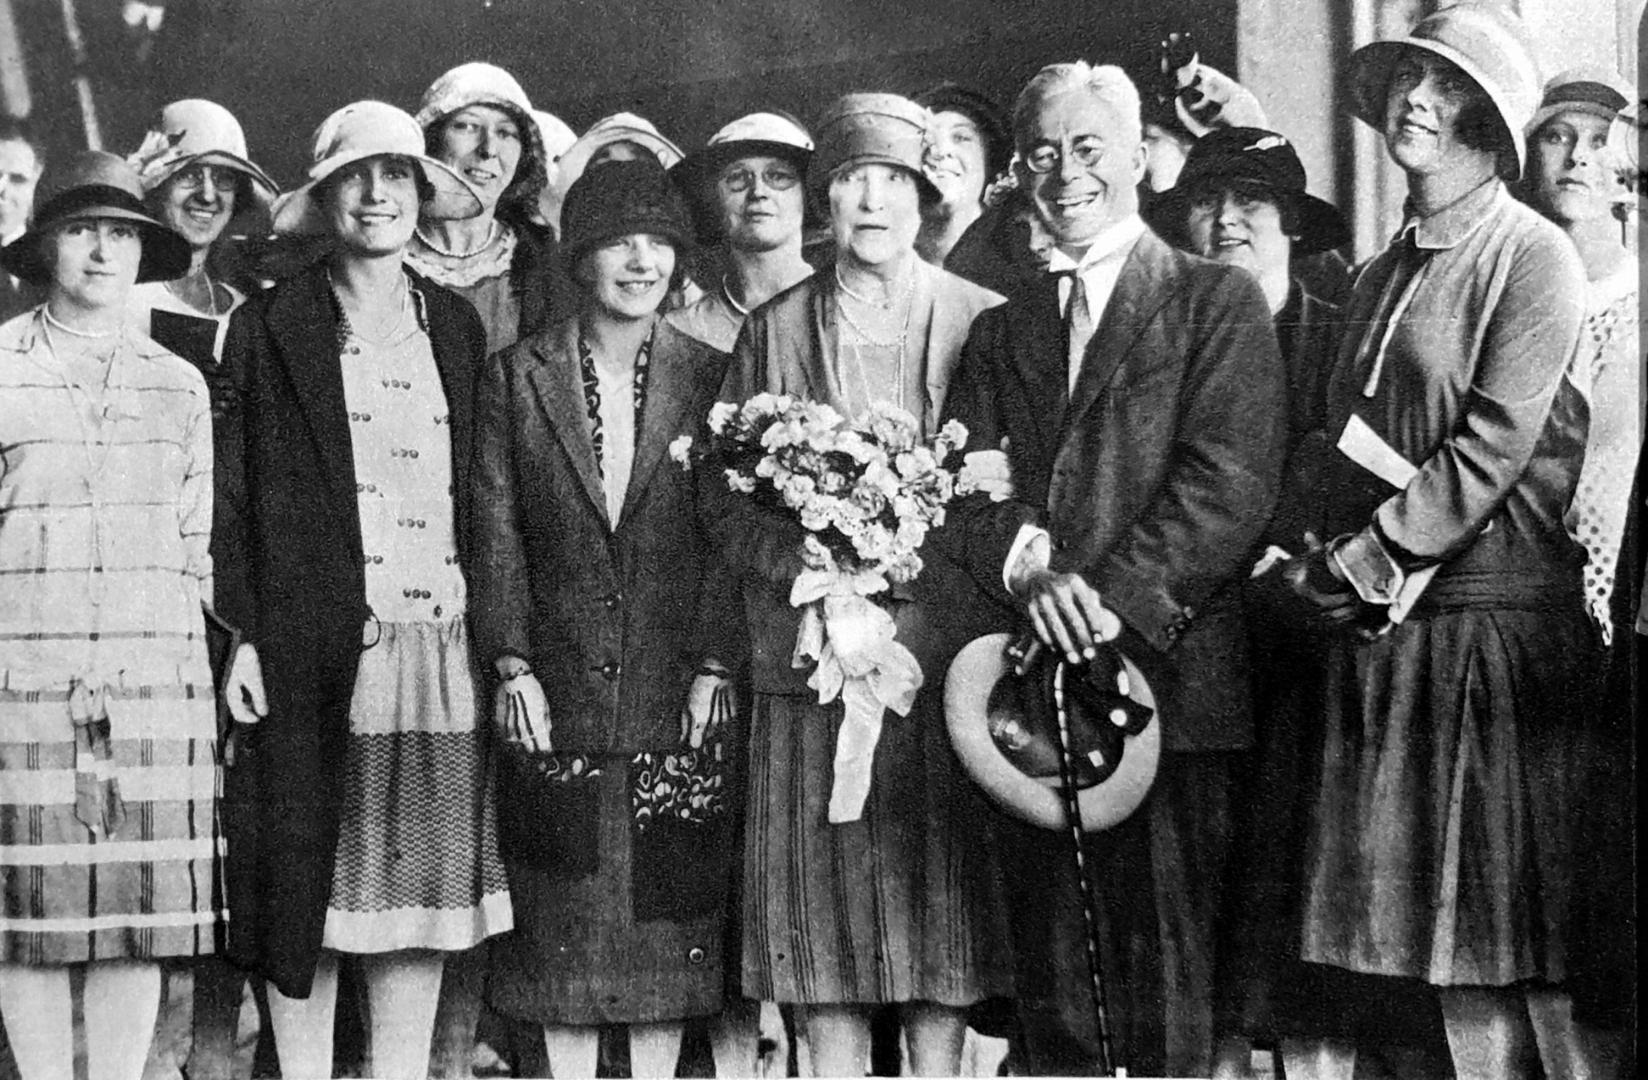 1927 Nellie Melba ( centre) with students, Alice on far right